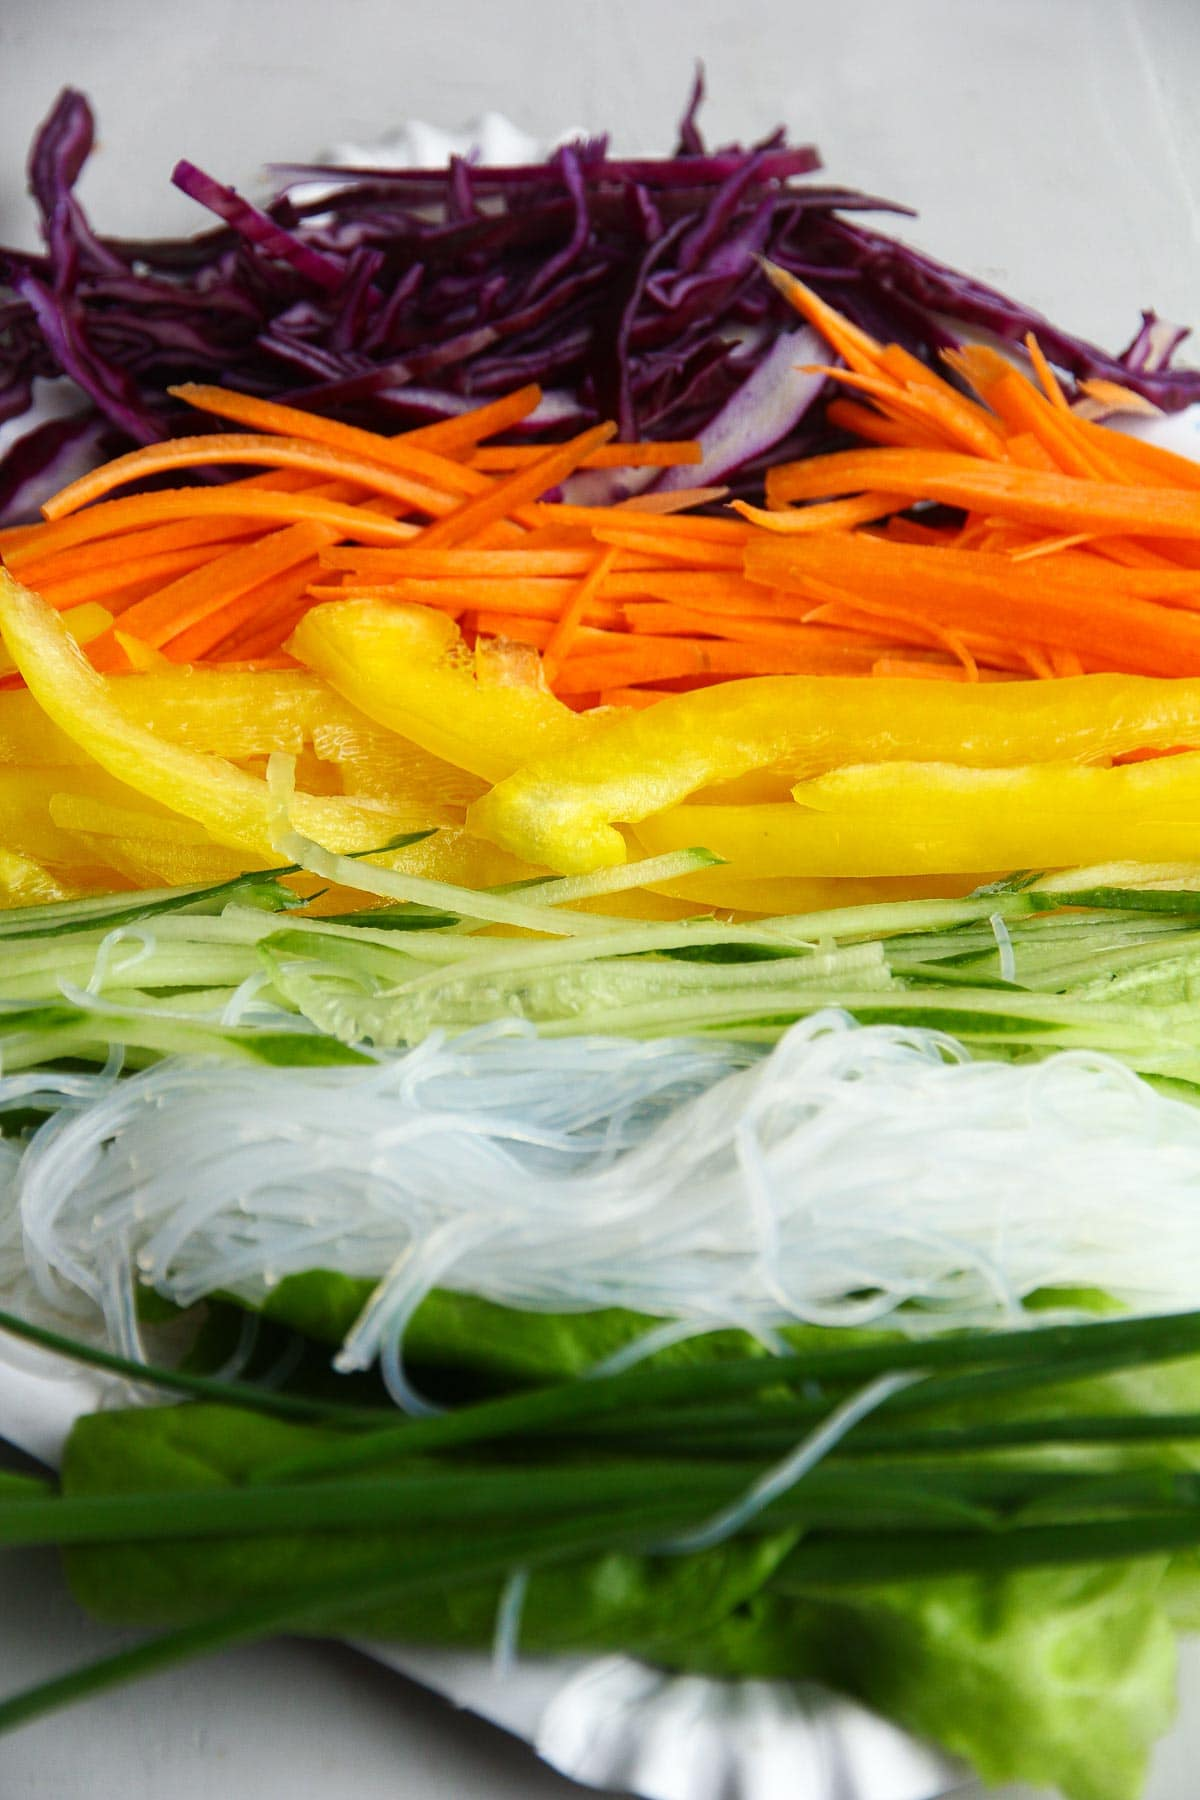 Spring rolls ingredients of fresh vegetables and vermicelli noodles.